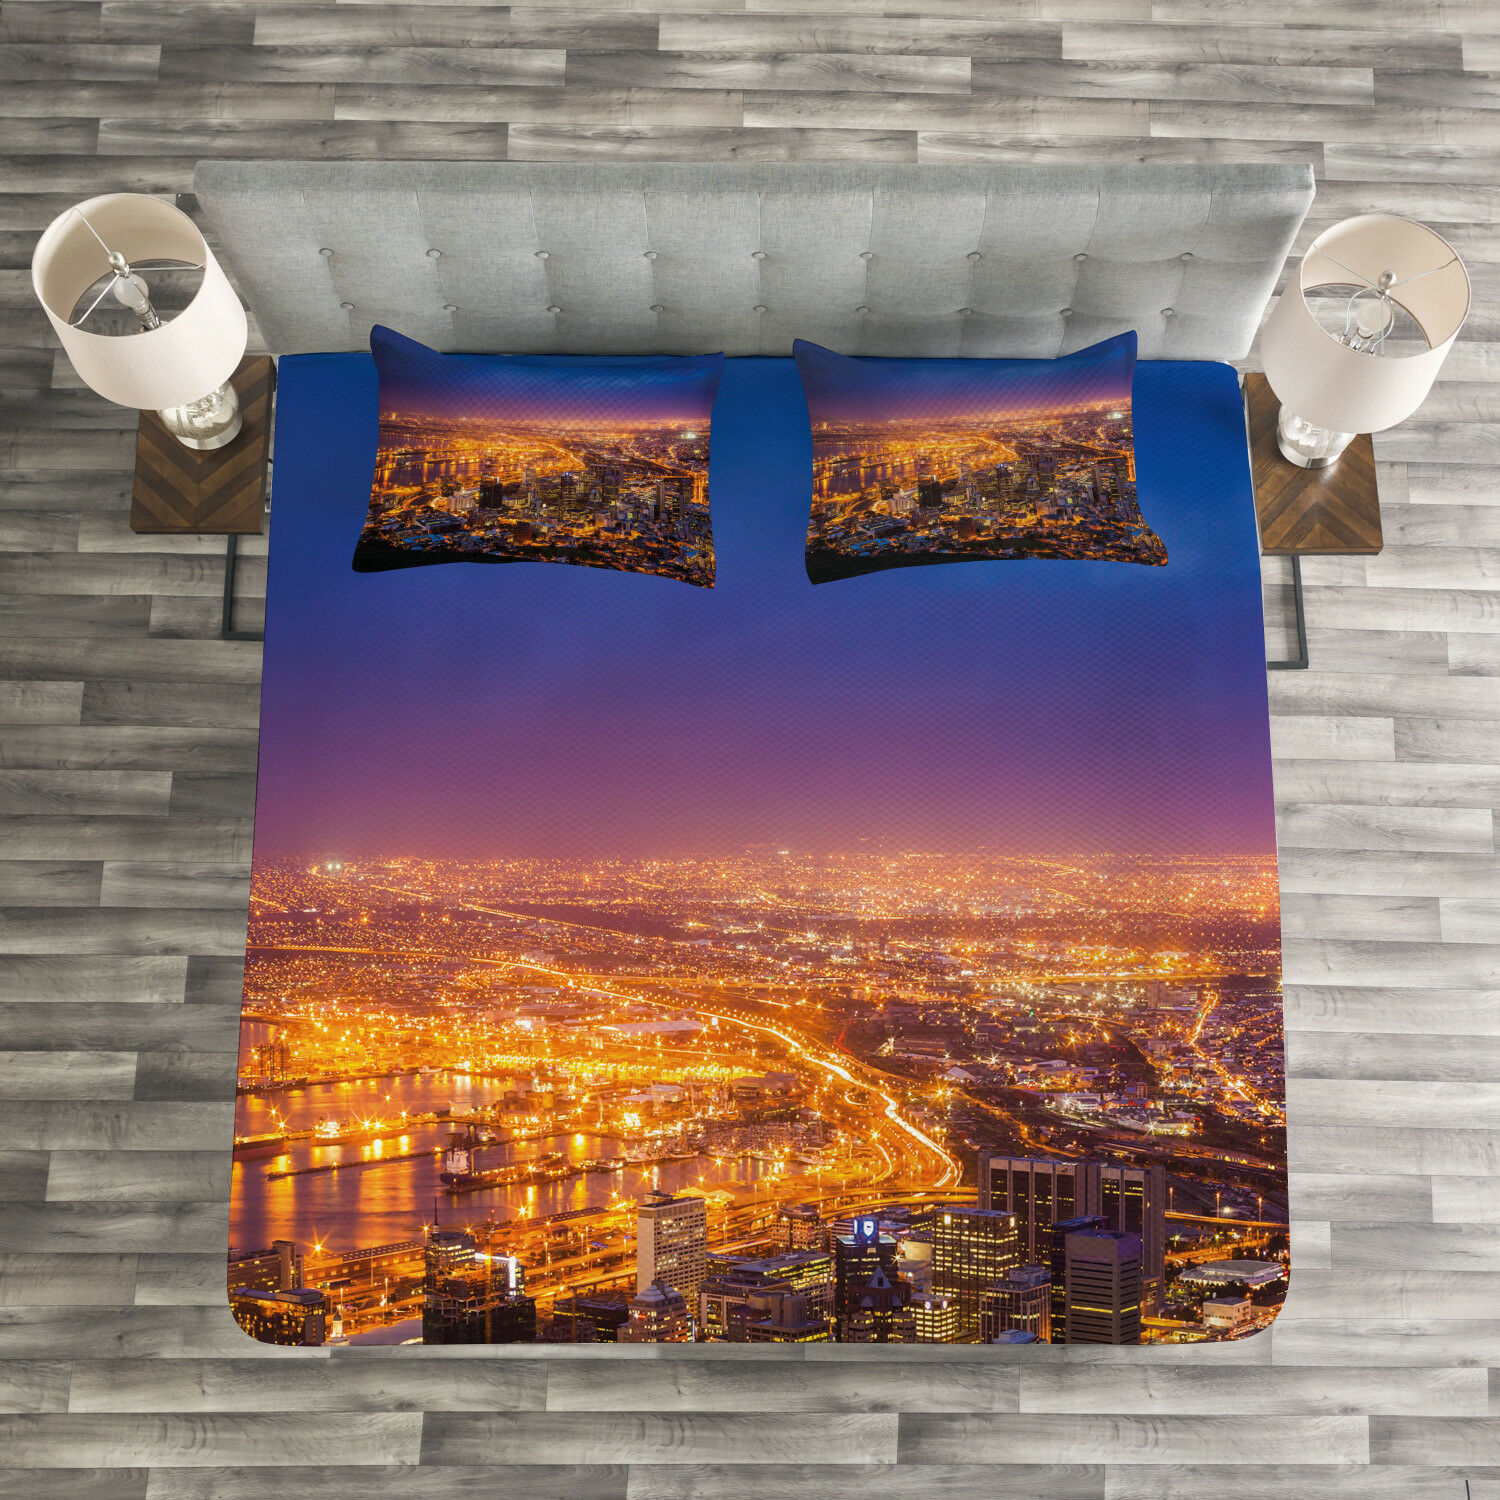 City Quilted Bedspread & Pillow Shams Set, Cape Town Panorama Africa Print